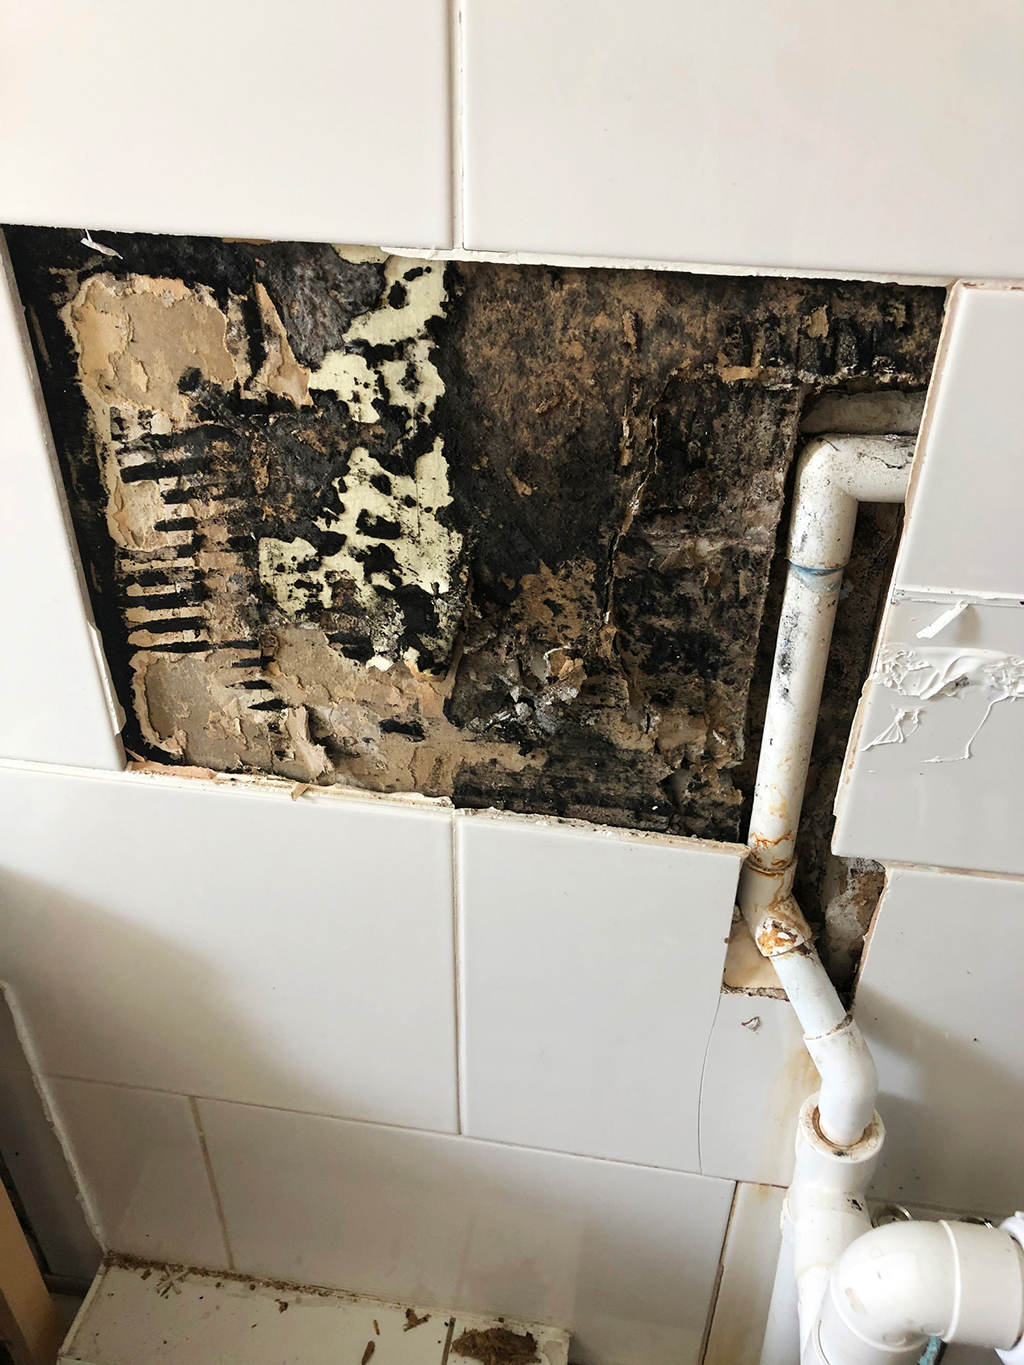 Mold Is a Plumbing Issue? It Can Be if You Make These Mistakes